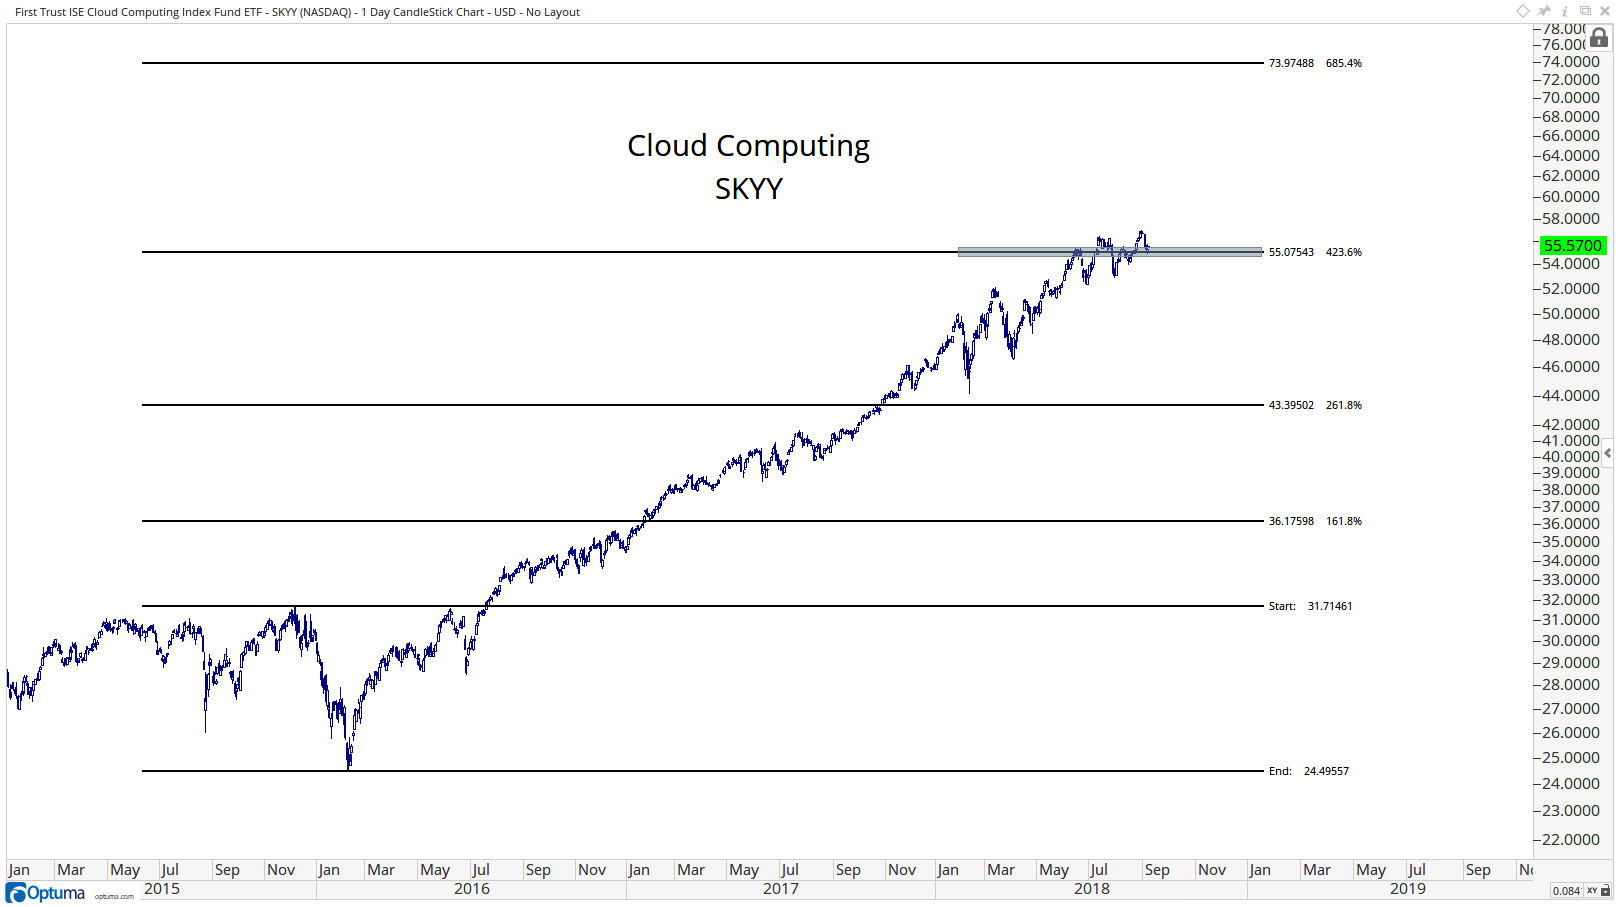 Technical chart showing the performance of the First Trust ISE Cloud Computing Index Fund ETF (SKYY)